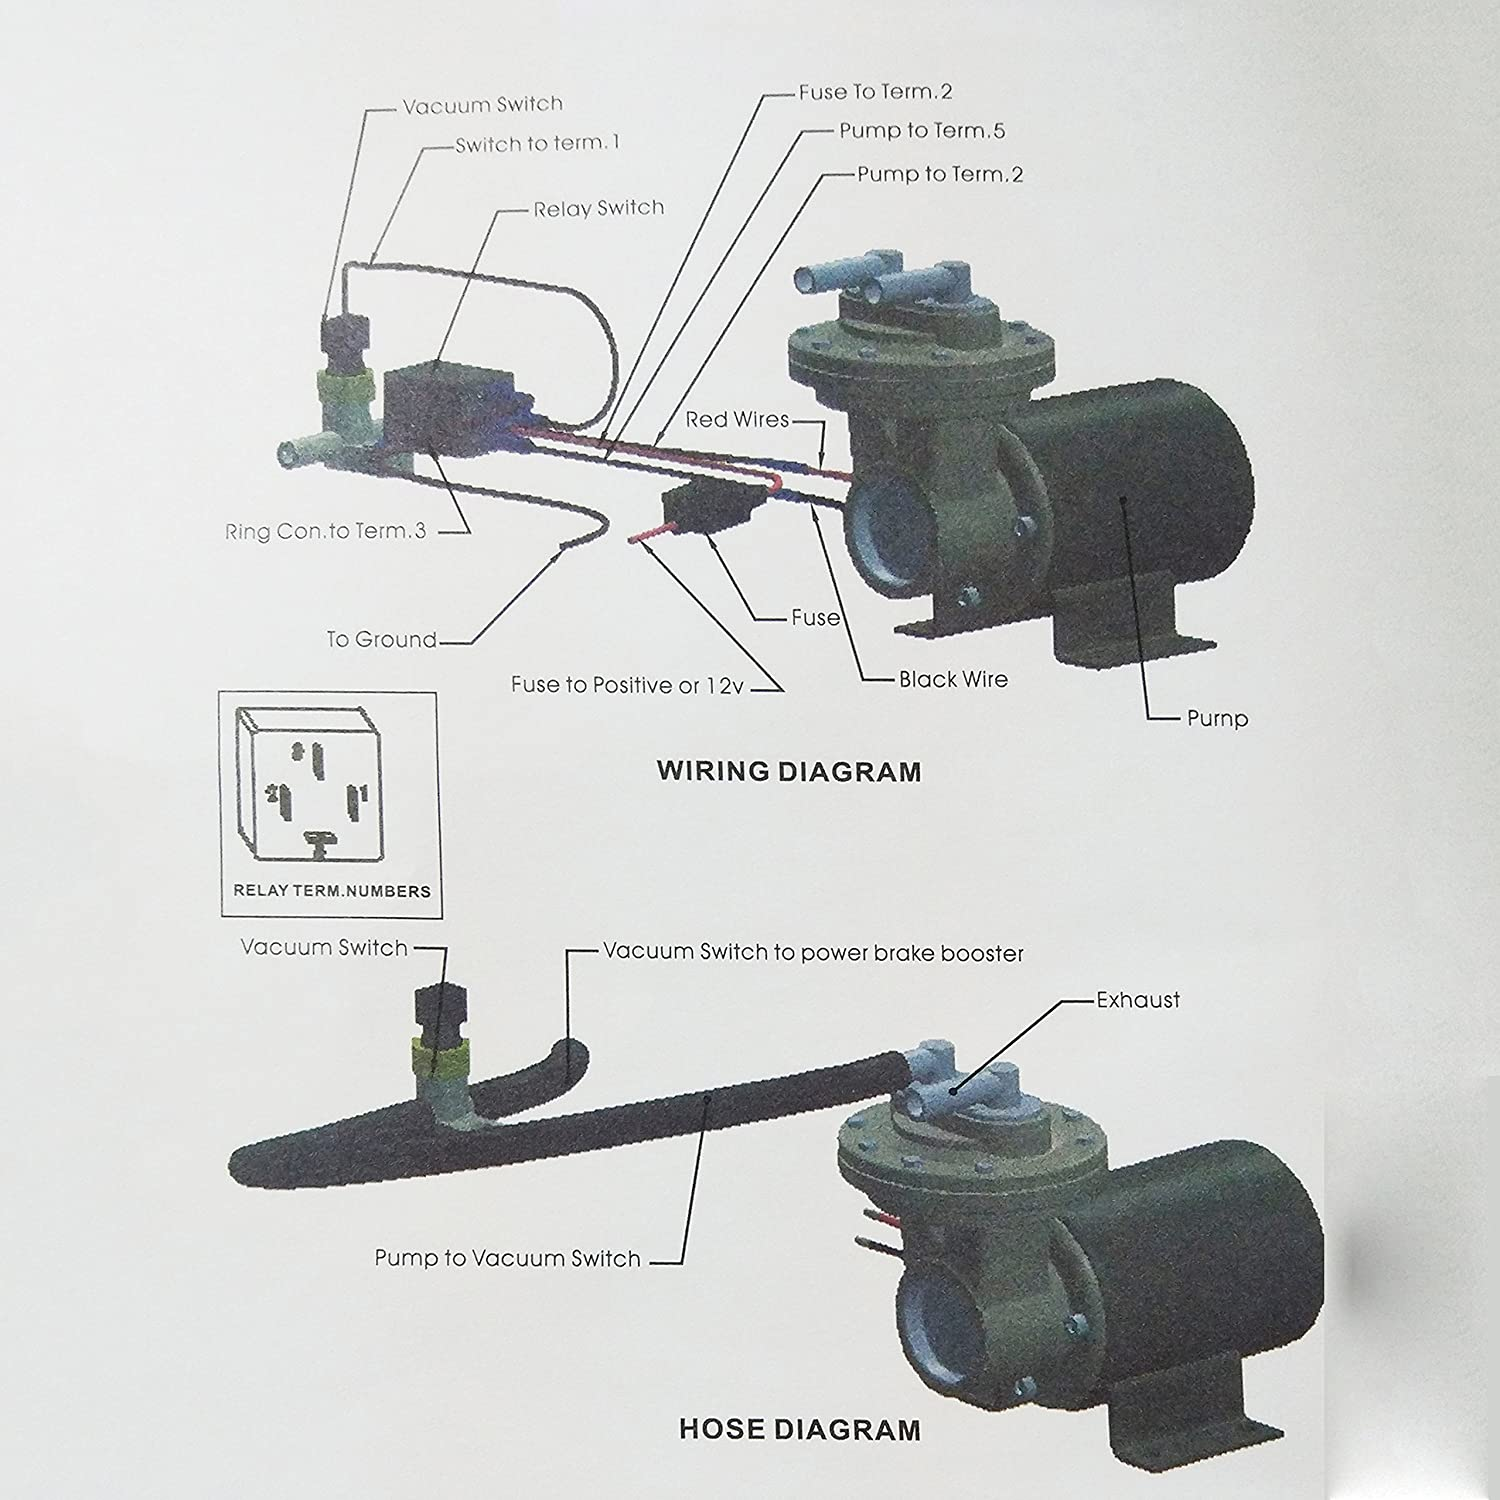 Gast Vacuum Pumps Wiring Diagram Library Motor Amazon Com Dracarys 28146 Electric Pump Kit For Brake System